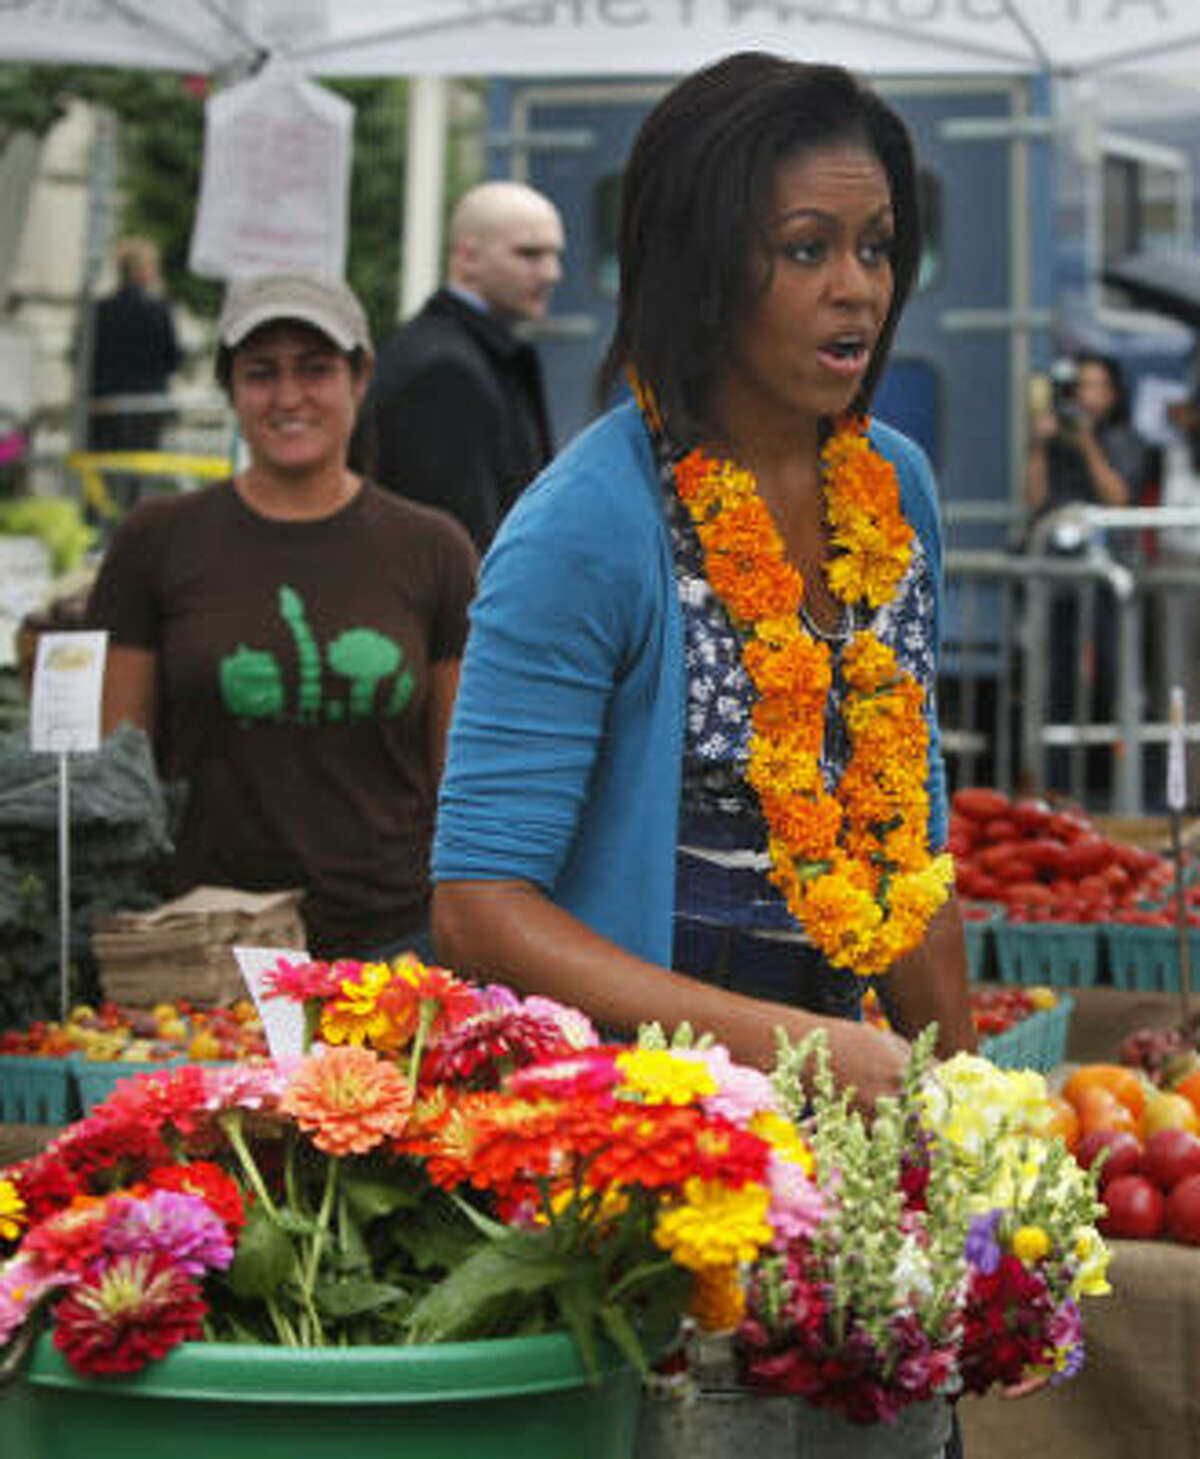 First lady Michelle Obama talks to the crowd as she chooses some flowers. More: More about the new market | Houston-area farmer's markets | Houston Plant Database | HoustonGrows.com